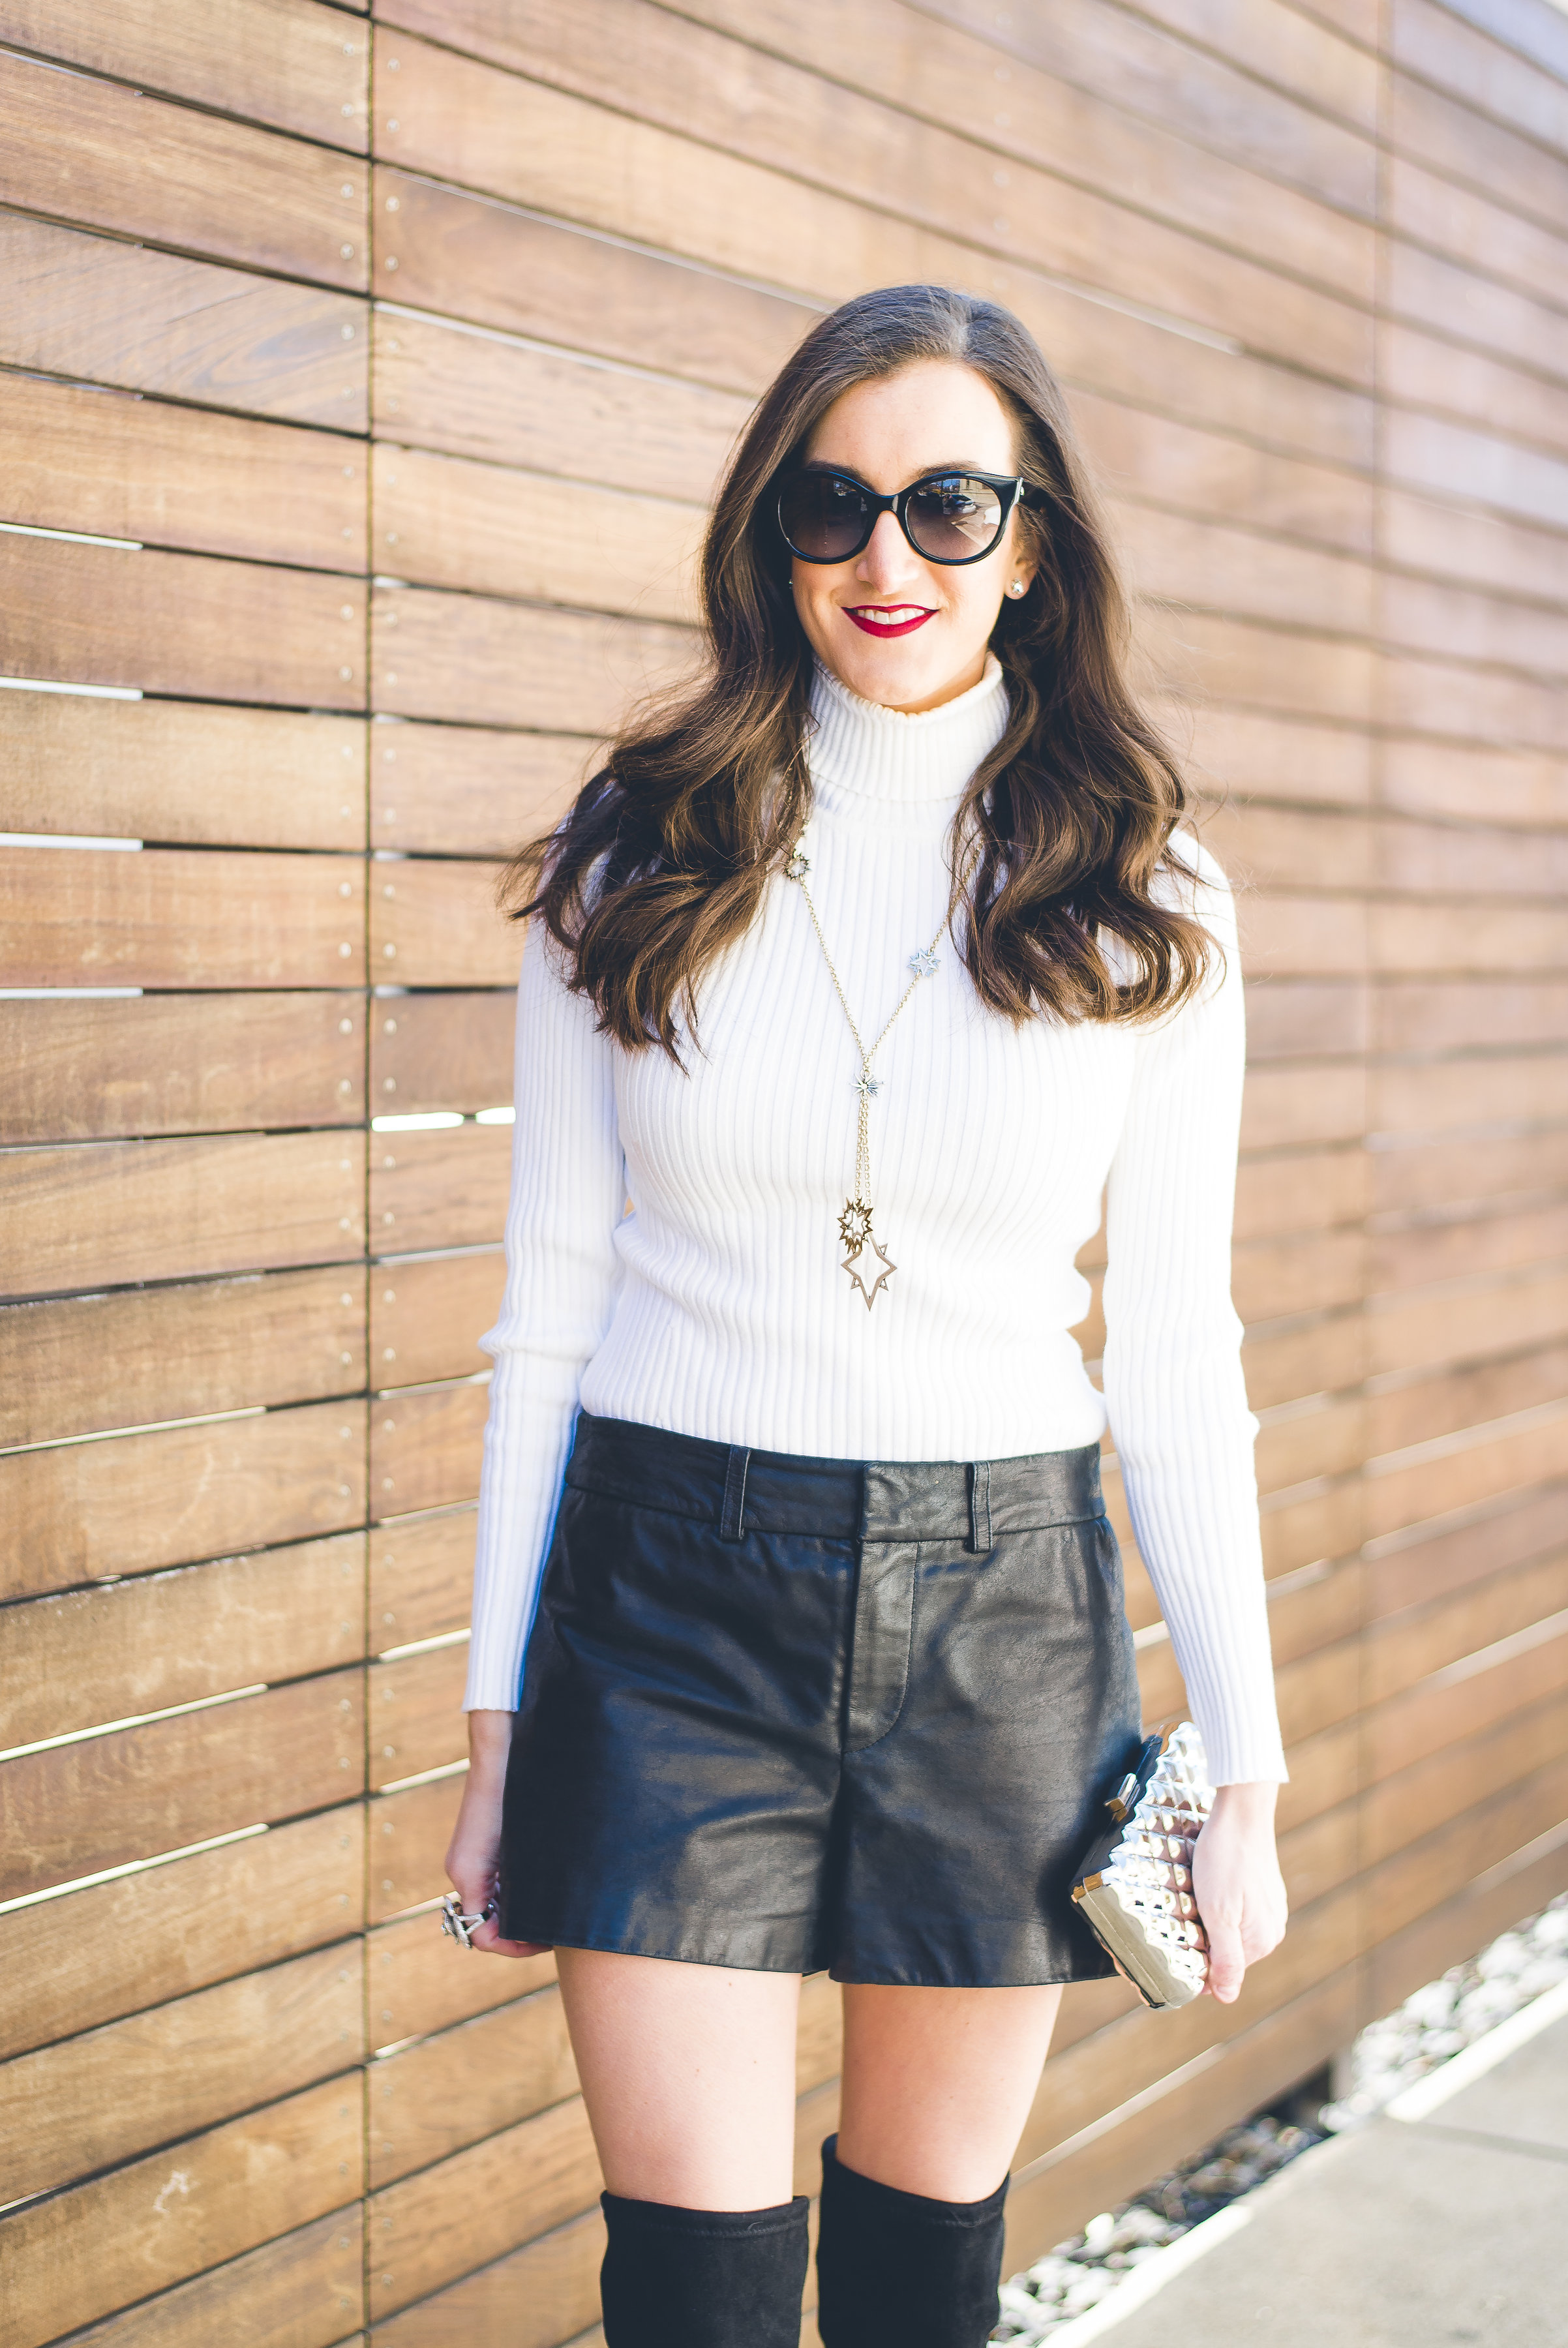 winter outfit ideas for women that are white and black